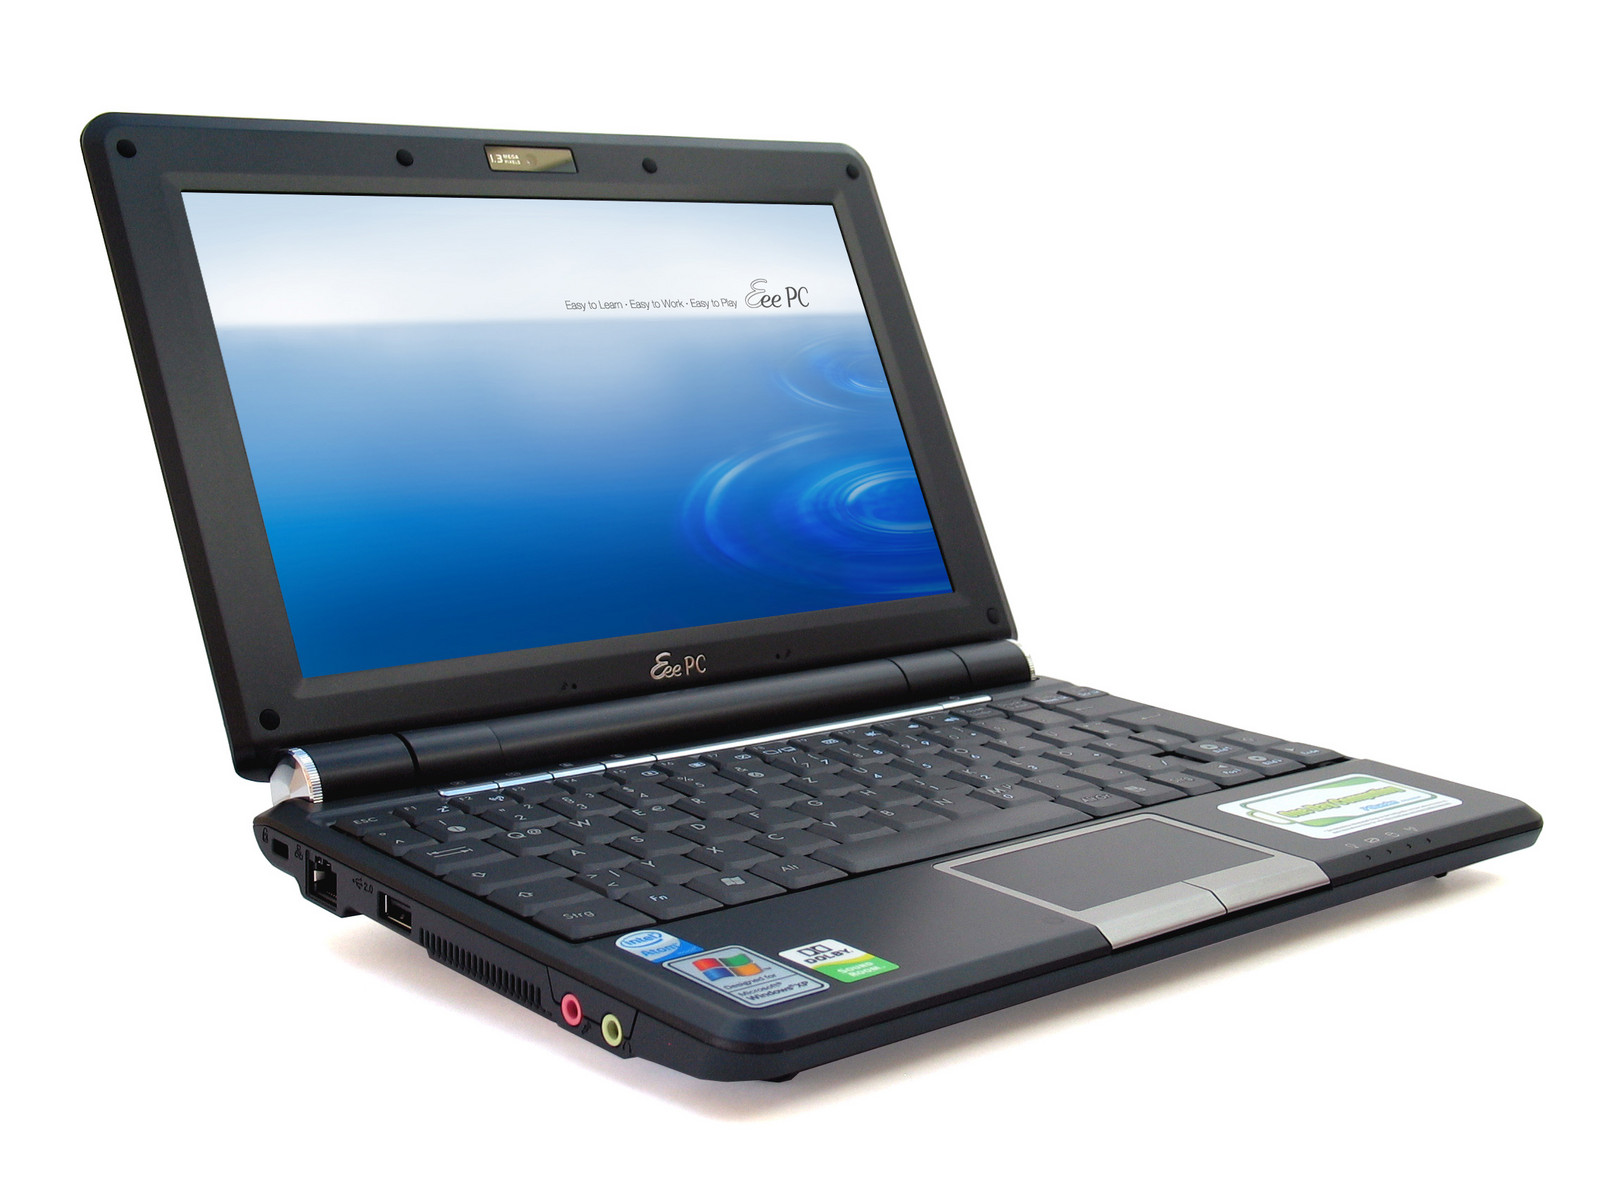 ASUS EEE PC 1000HE ETHERNET CONTROLLER WINDOWS 7 DRIVERS DOWNLOAD